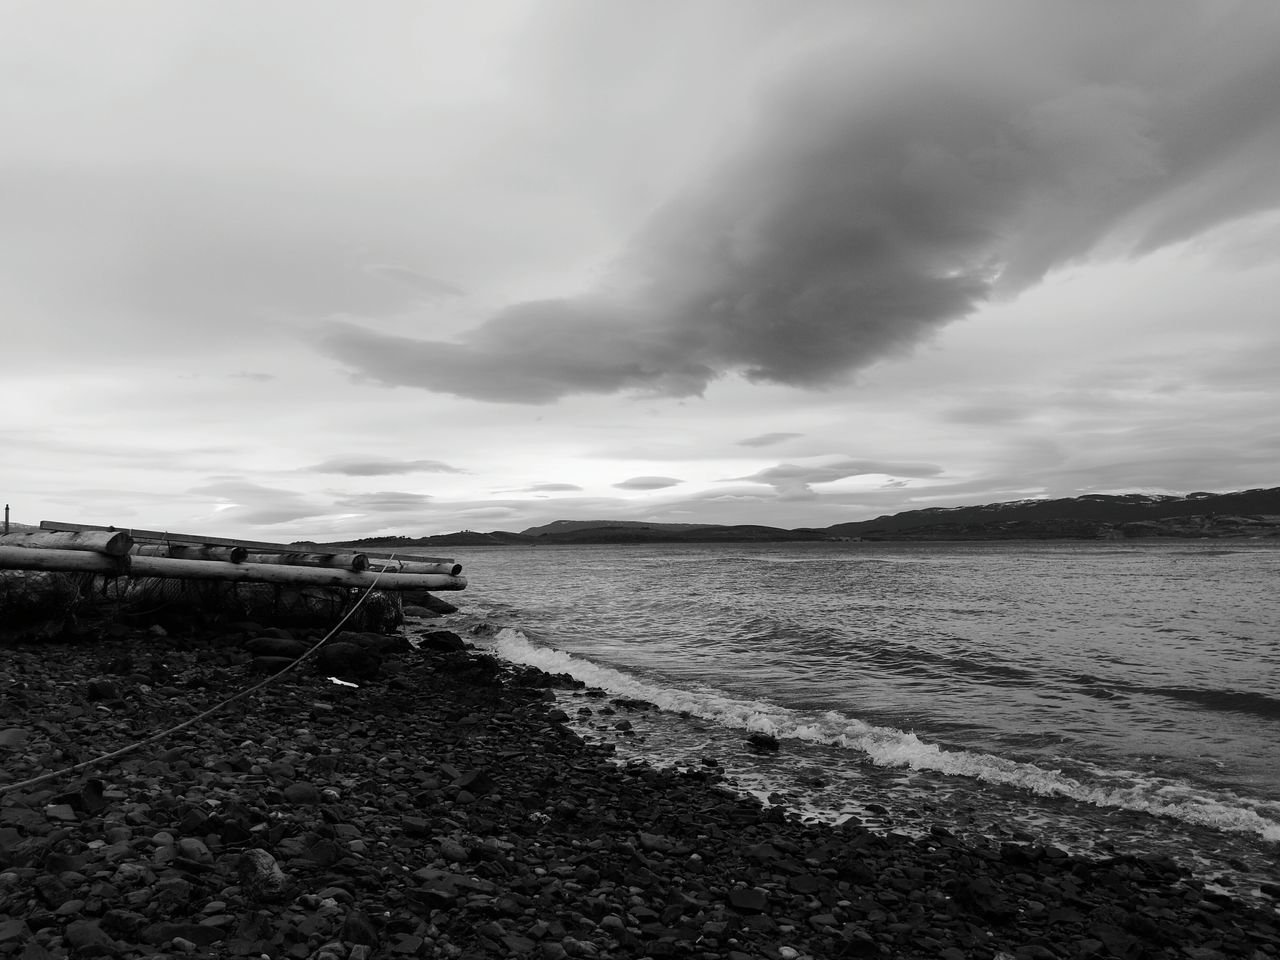 Water Sea Tranquil Scene Scenics Sky Beach Nature Travel Destinations Majestic Vacations Beauty In Nature Argentina Ushuaïa Argentina Photography Ushuaia Argentina Fin Del Mundo Argentina 👑🎉🎊👌😚😍 Ushuaia Arg. Ushuaia Paisaje Ushuaia Tierradelfuego Beauty In Nature Nature Blackandwhite Photography Black & White